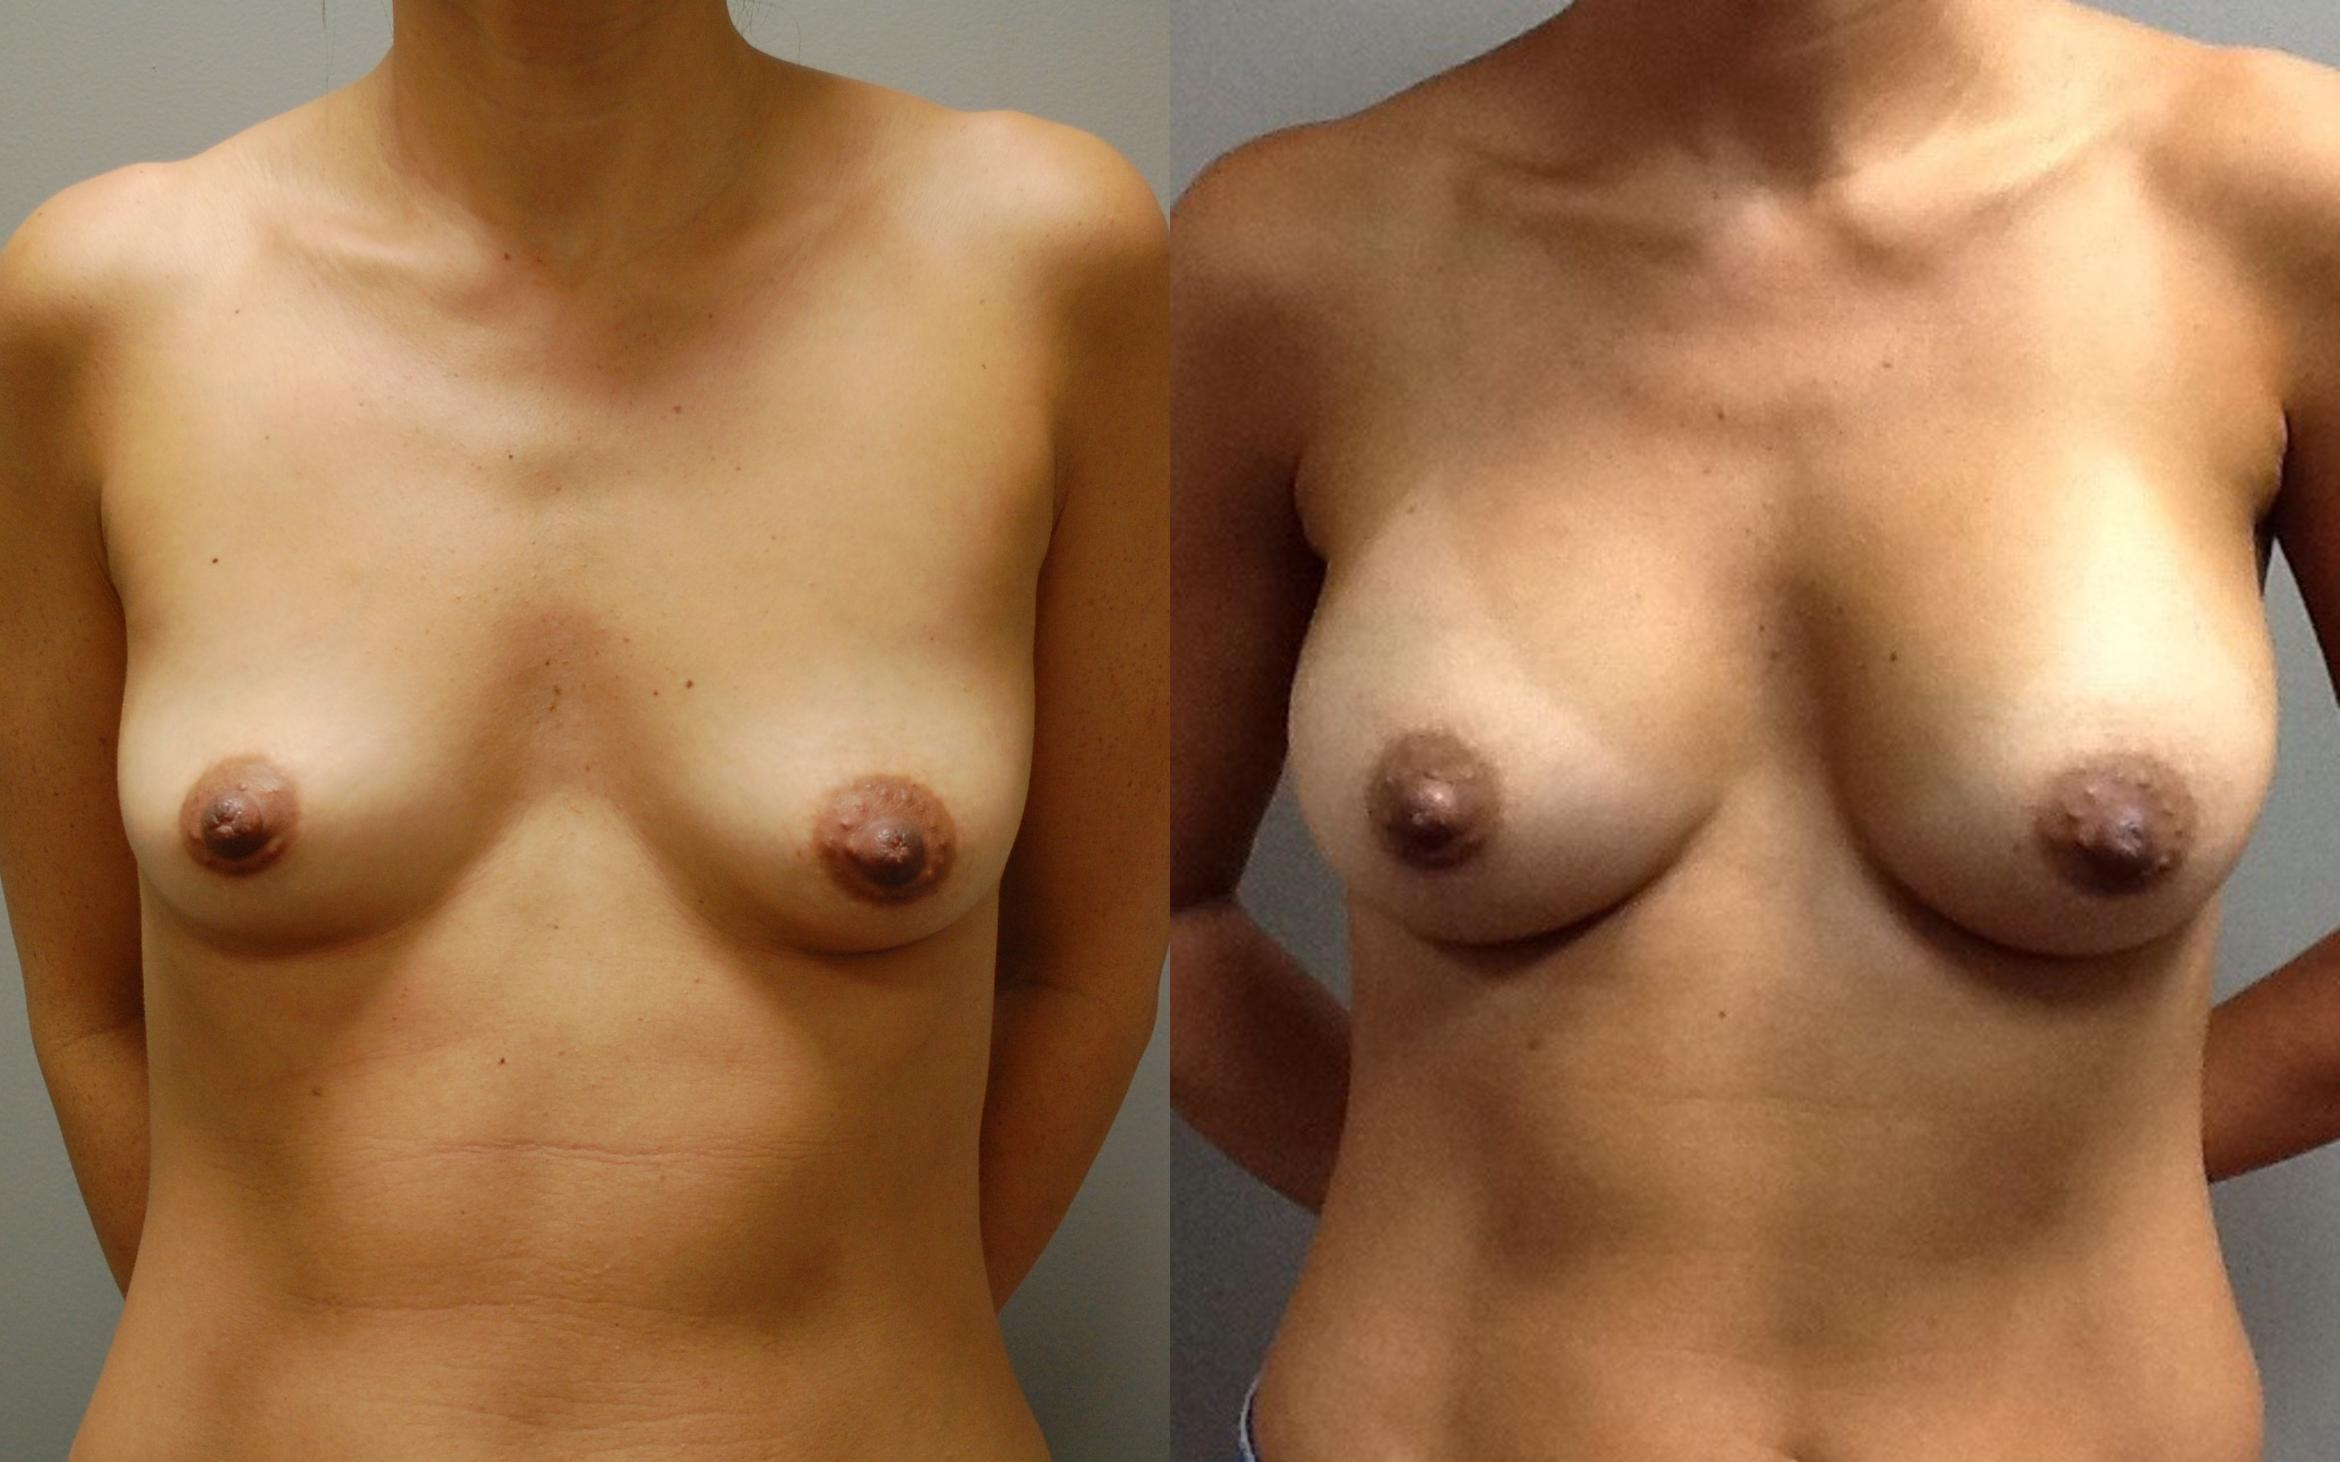 Breast Augmentation Before & After Photo | Longmeadow, MA | Aesthetic Plastic & Reconstructive Surgery